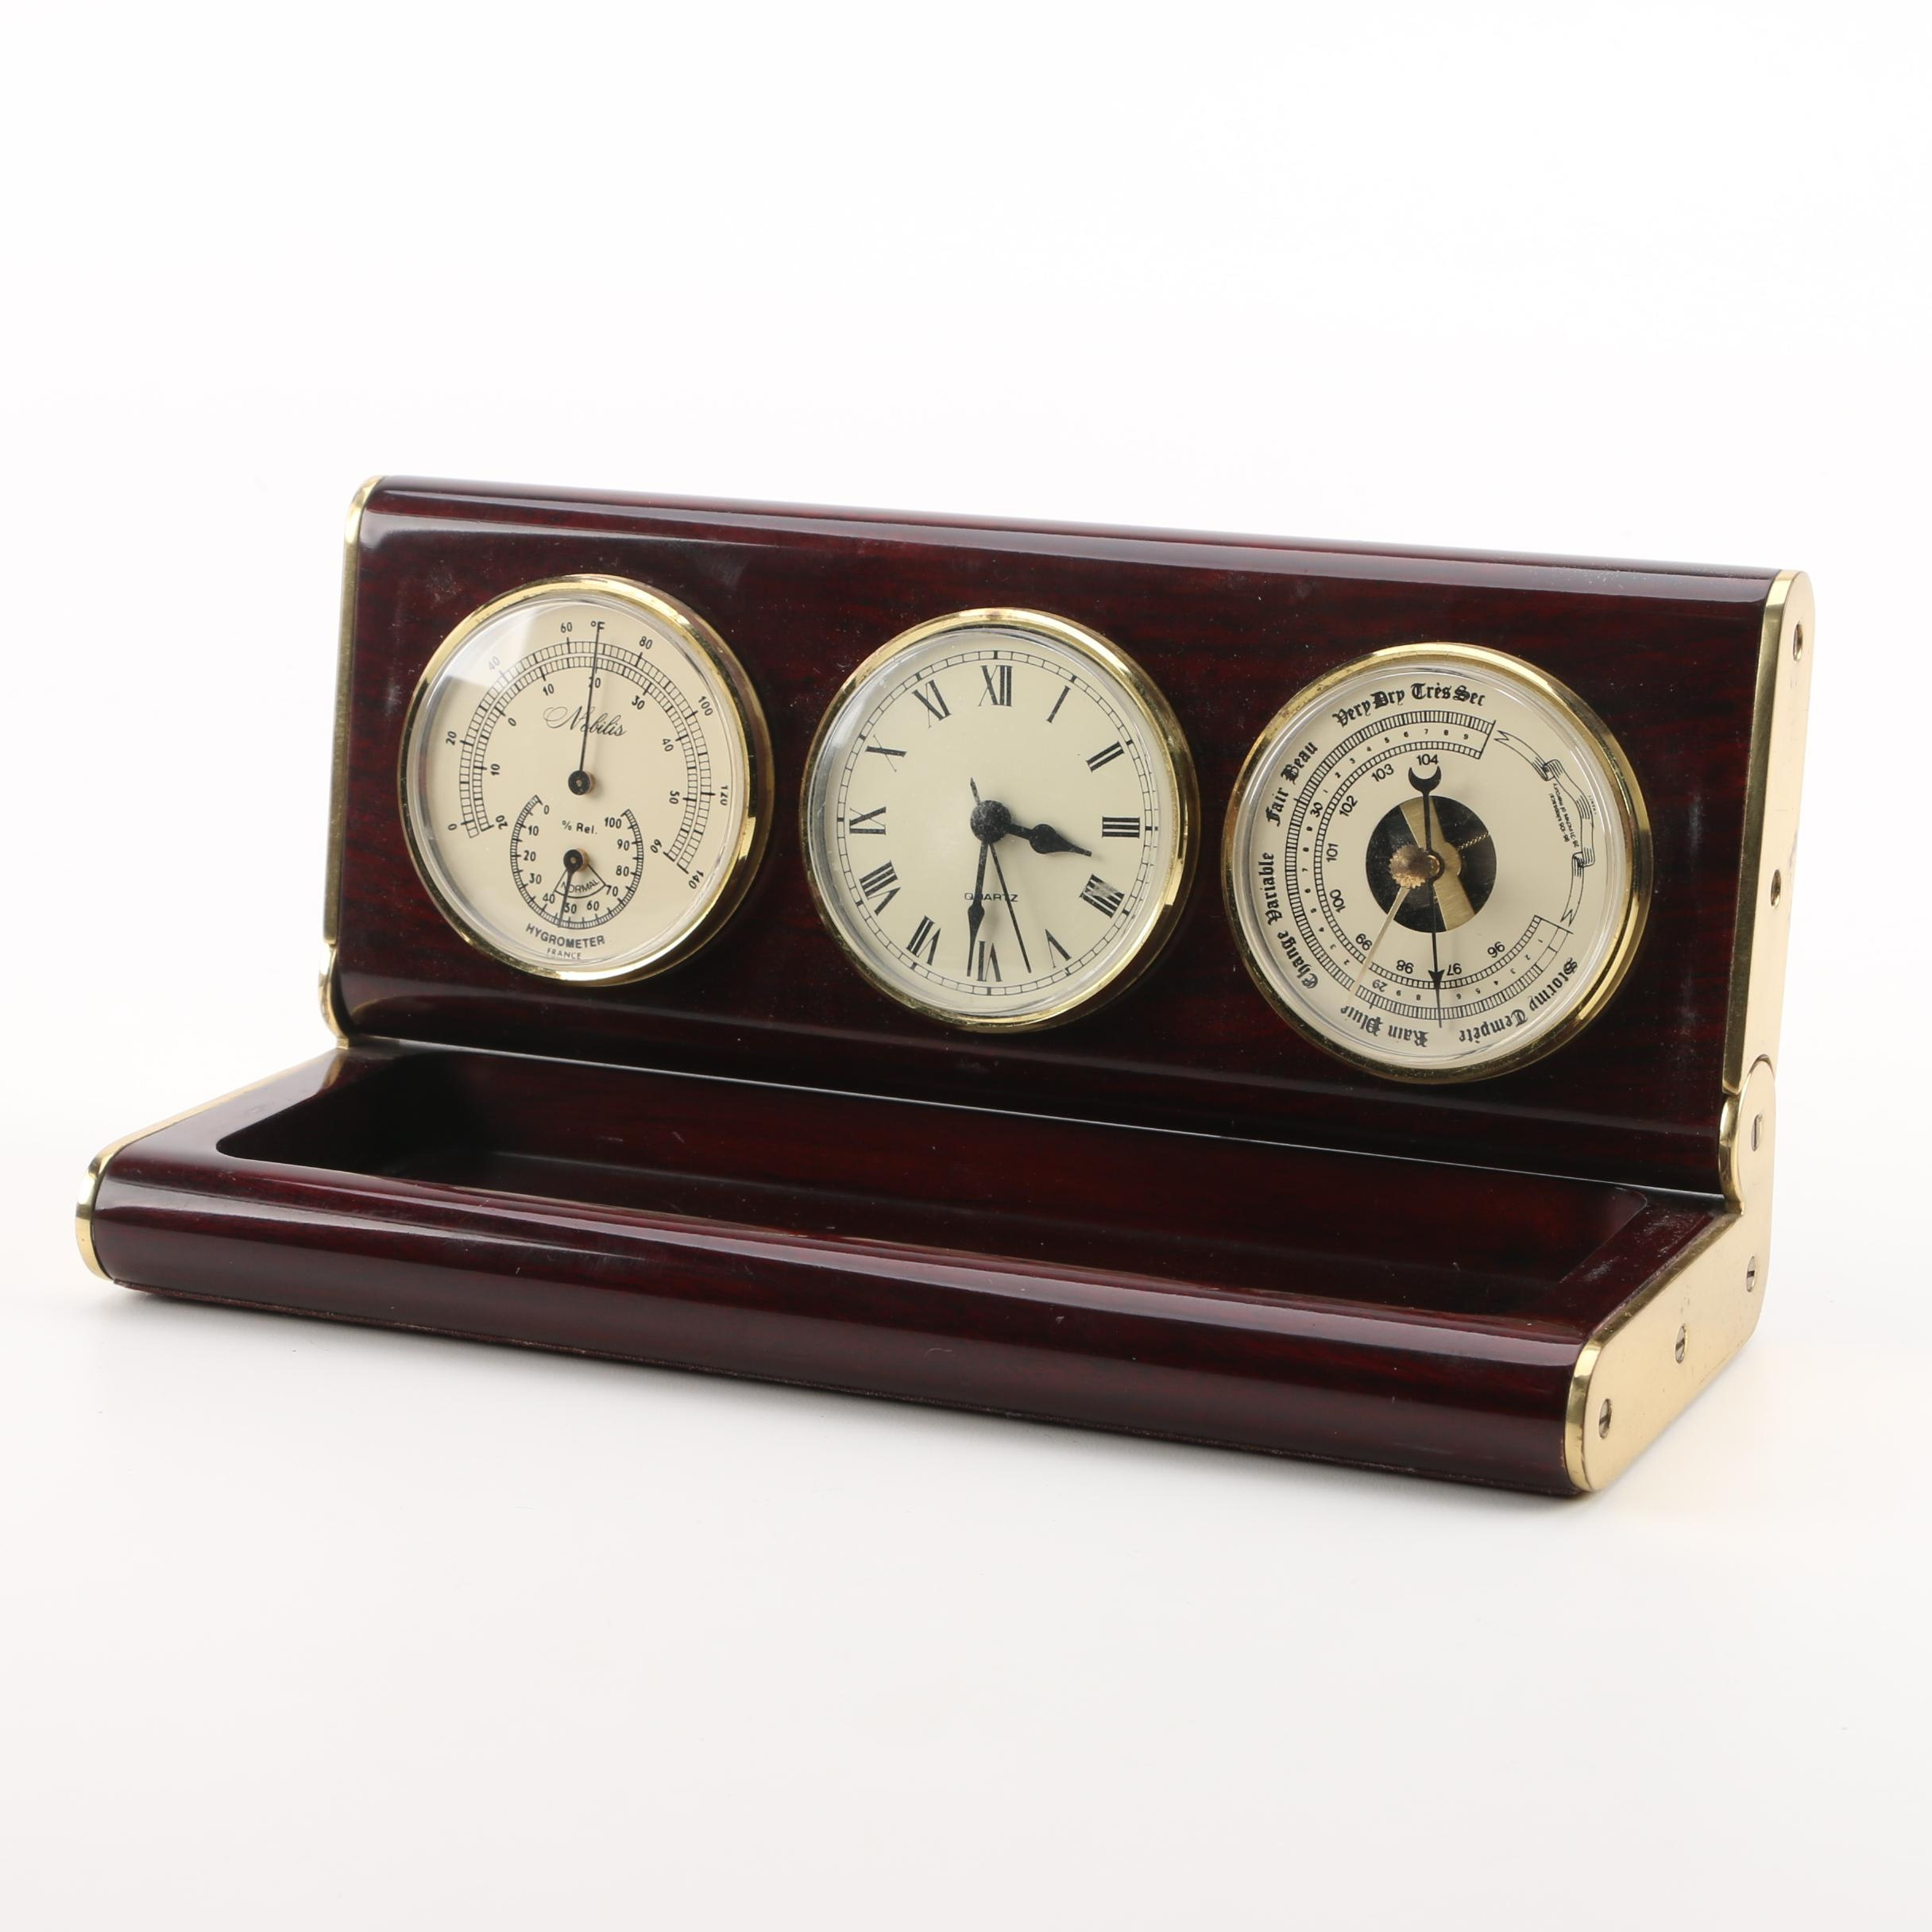 Nobilis French Desktop Clock and Weather Station